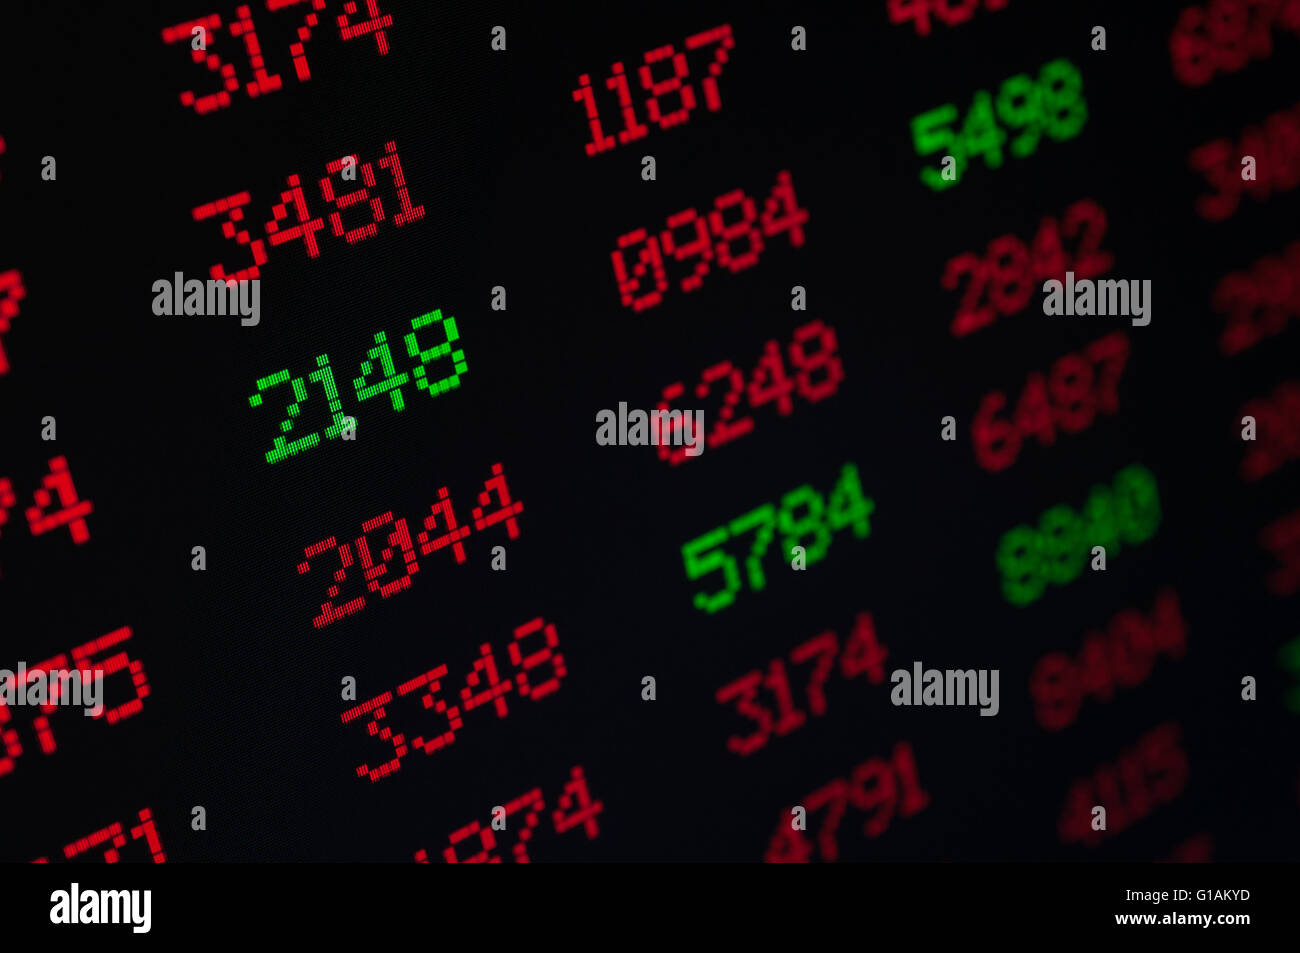 Stock Market - Digital Display With Red and Green Figures - Shallow Depth Of Field - Stock Image